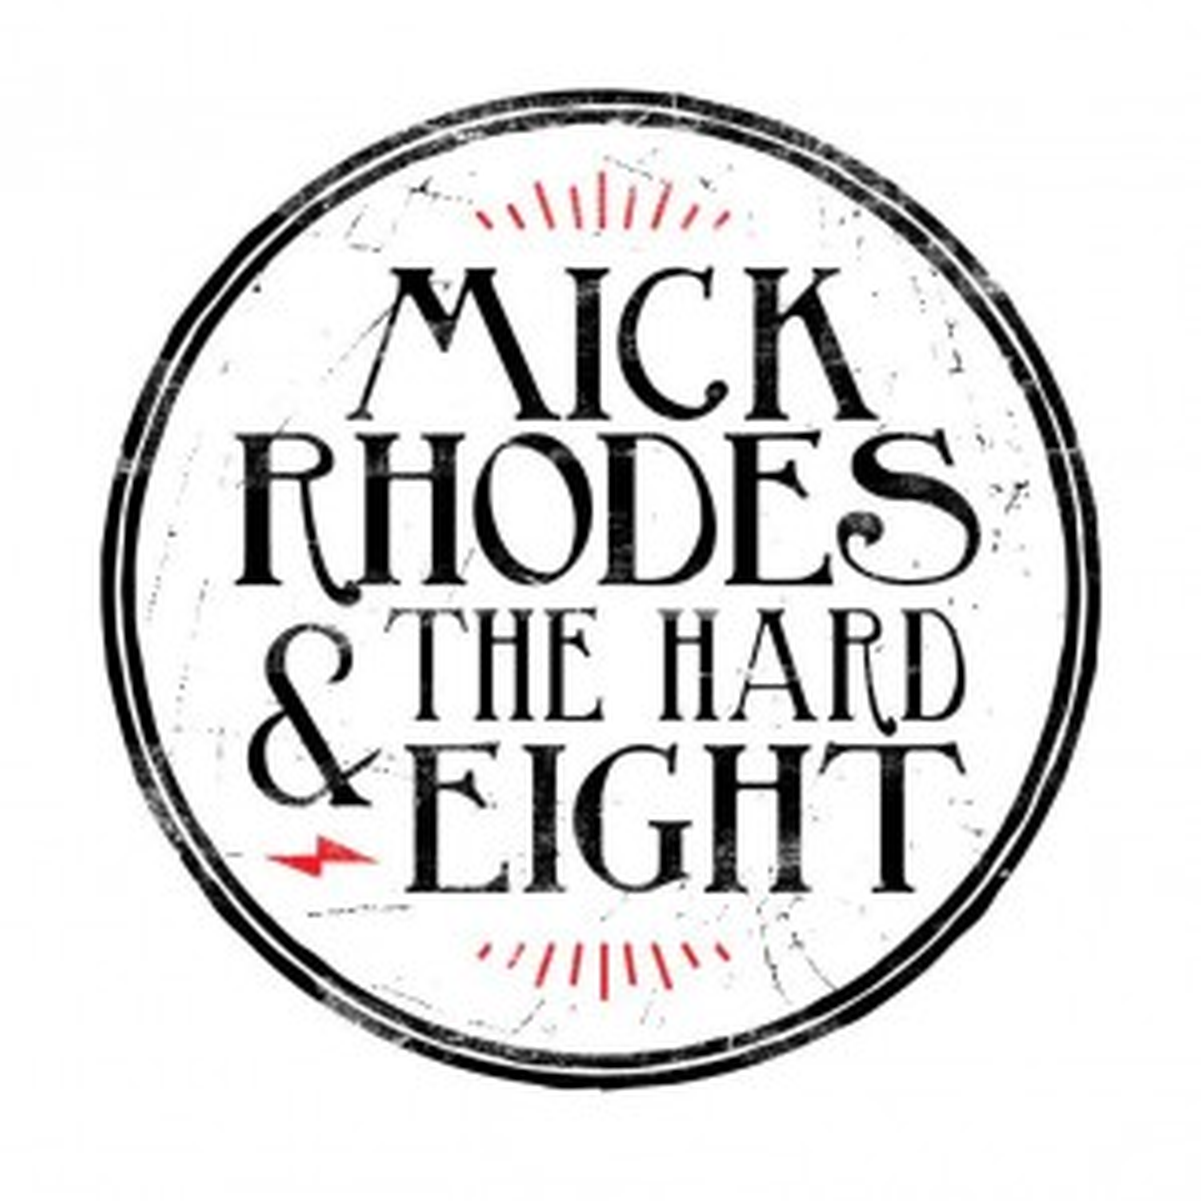 Mick Rhodes and the Hard Eight